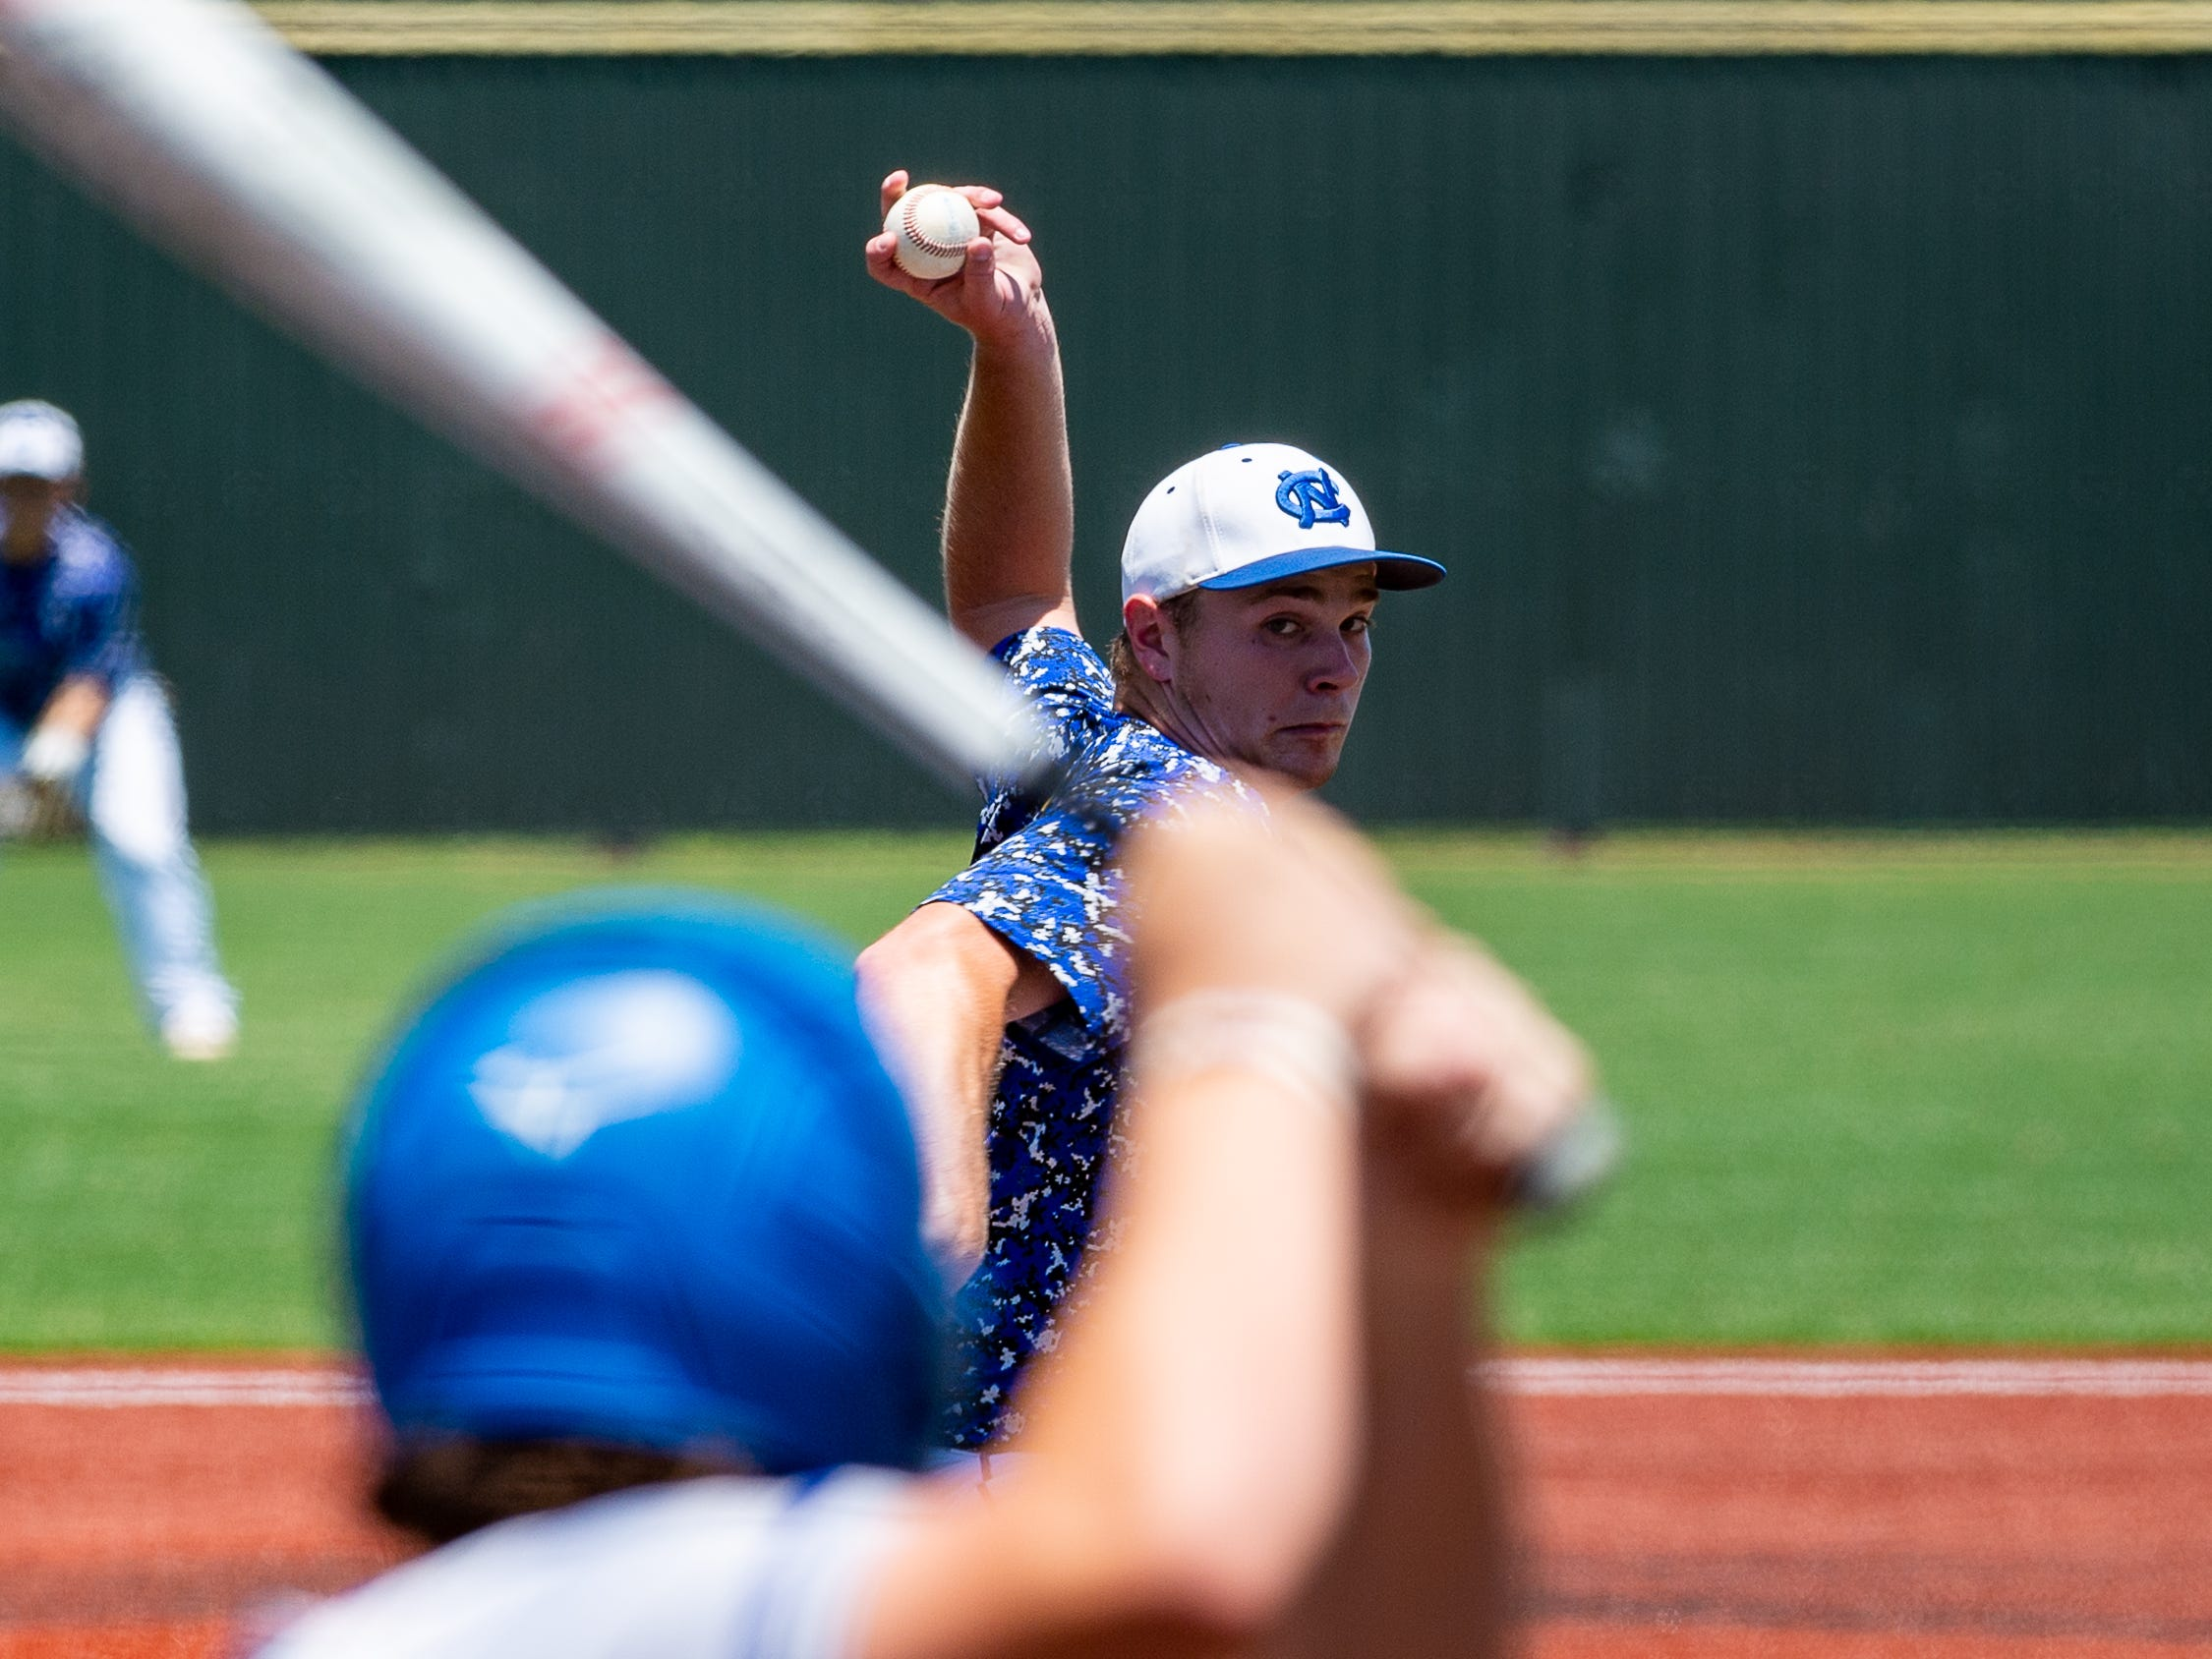 Northside Christian takes down Runnels to win the Div V LHSAA State Championship Tournament. Monday, May 13, 2019.